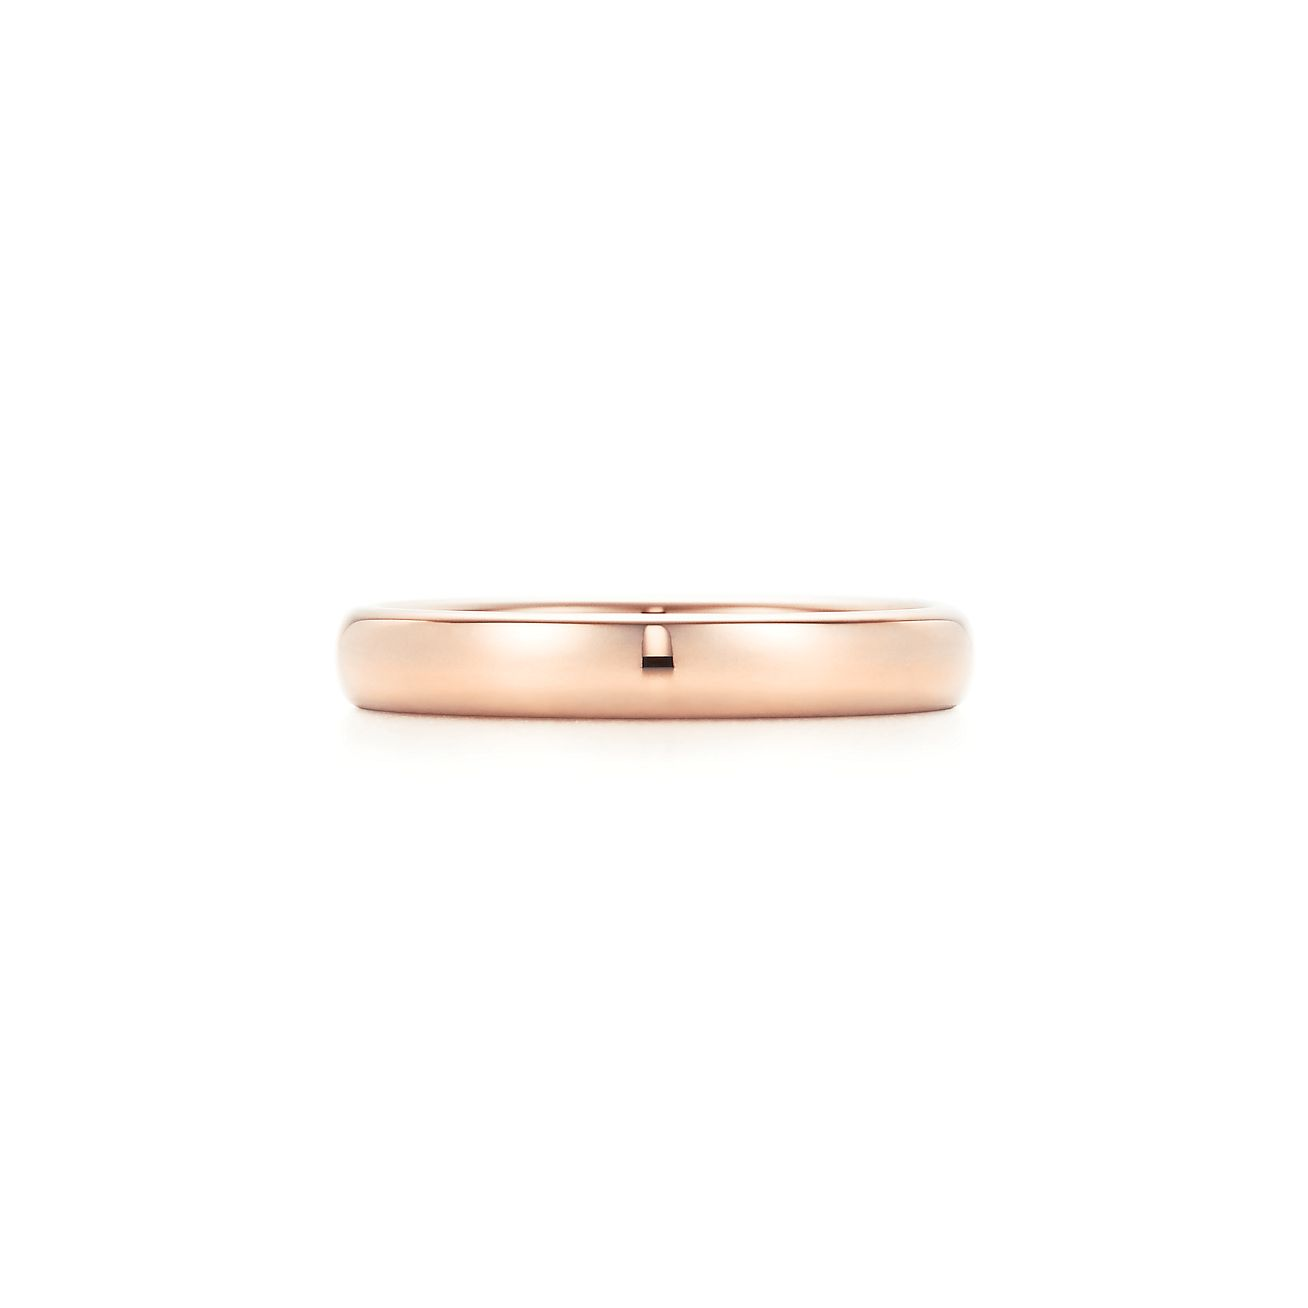 Tiffany classic wedding band ring in 18k rose gold 3 mm wide tiffany classicwedding band ring junglespirit Images